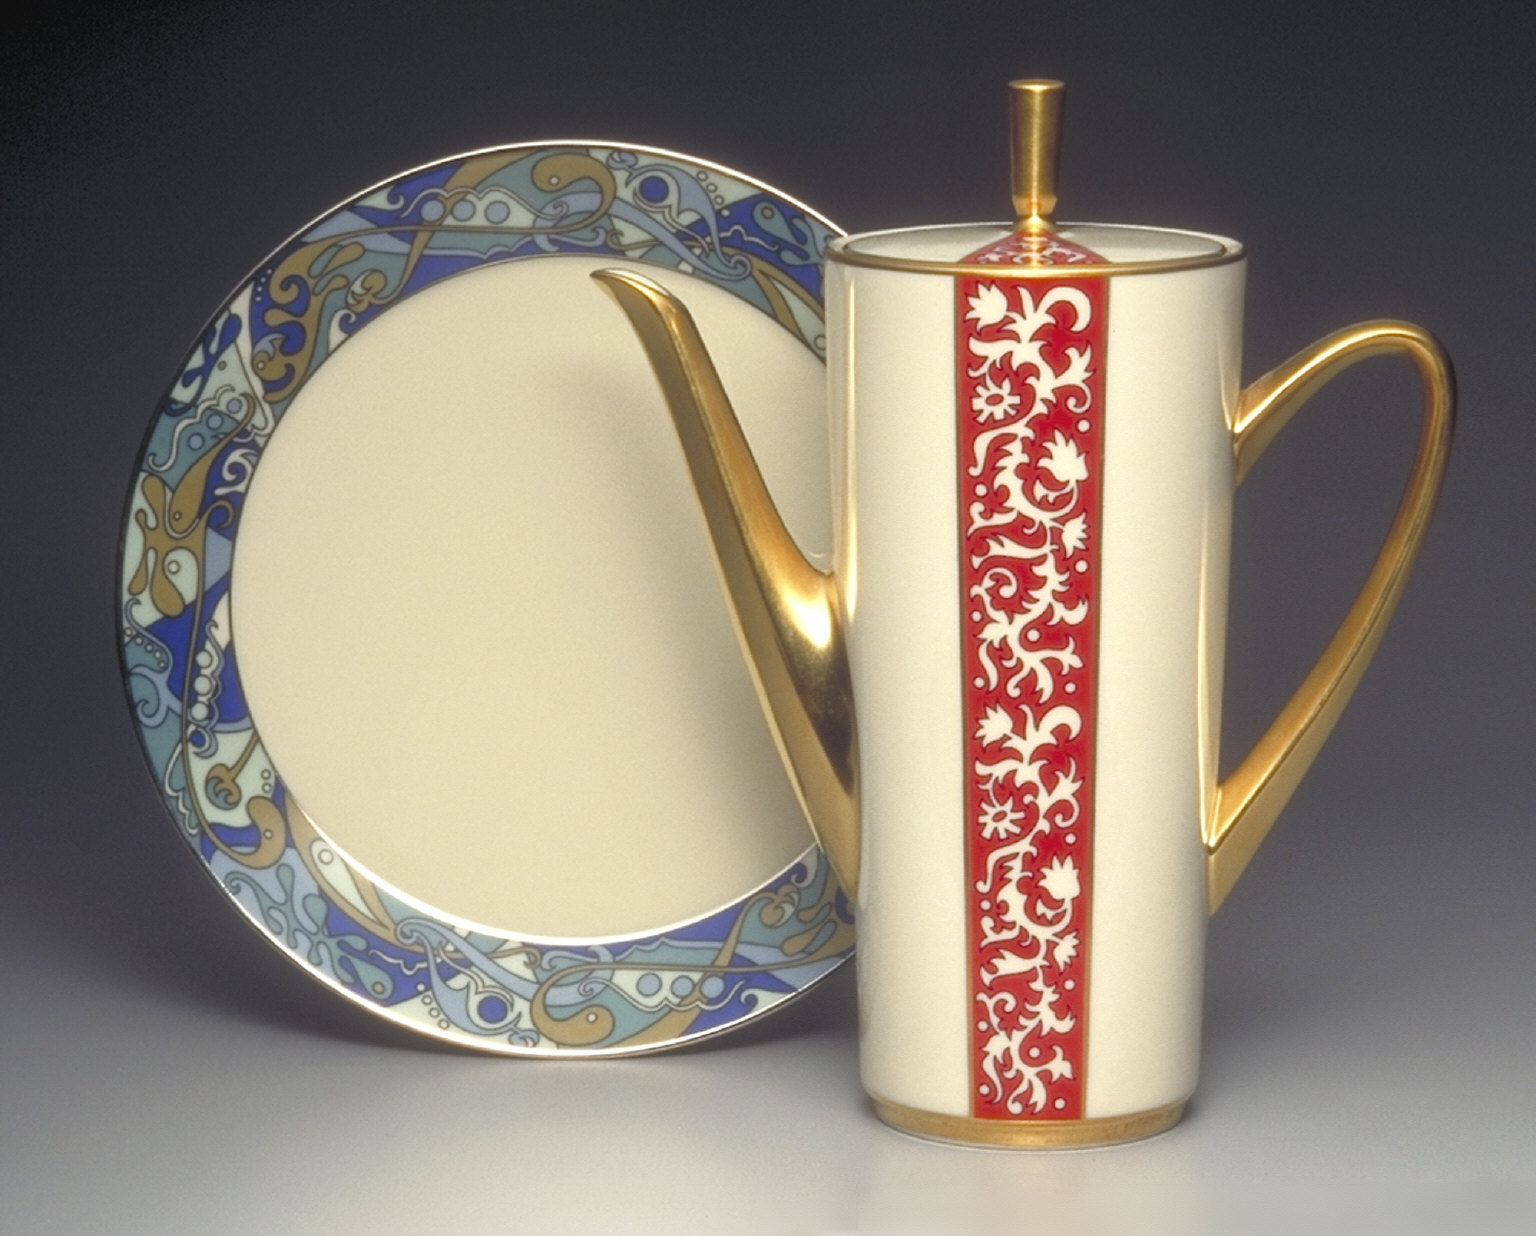 'Innovation' shape coffeepot with 'Firesong' pattern decoration